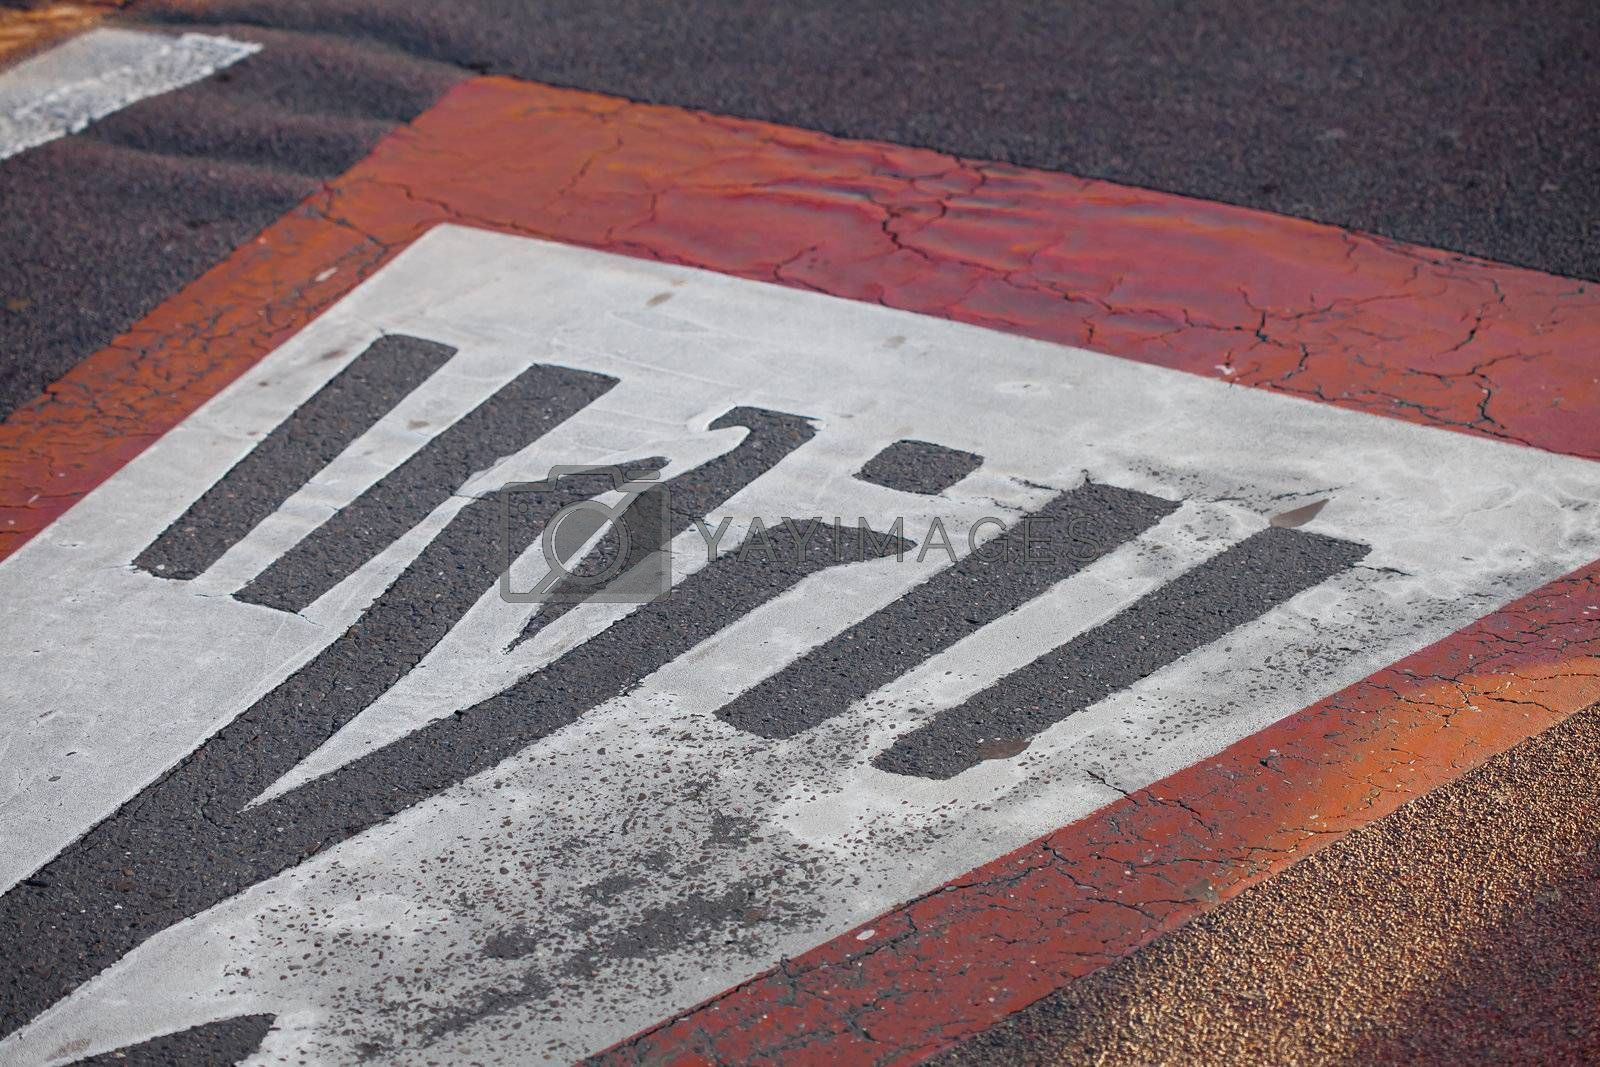 travel signs painted on the road